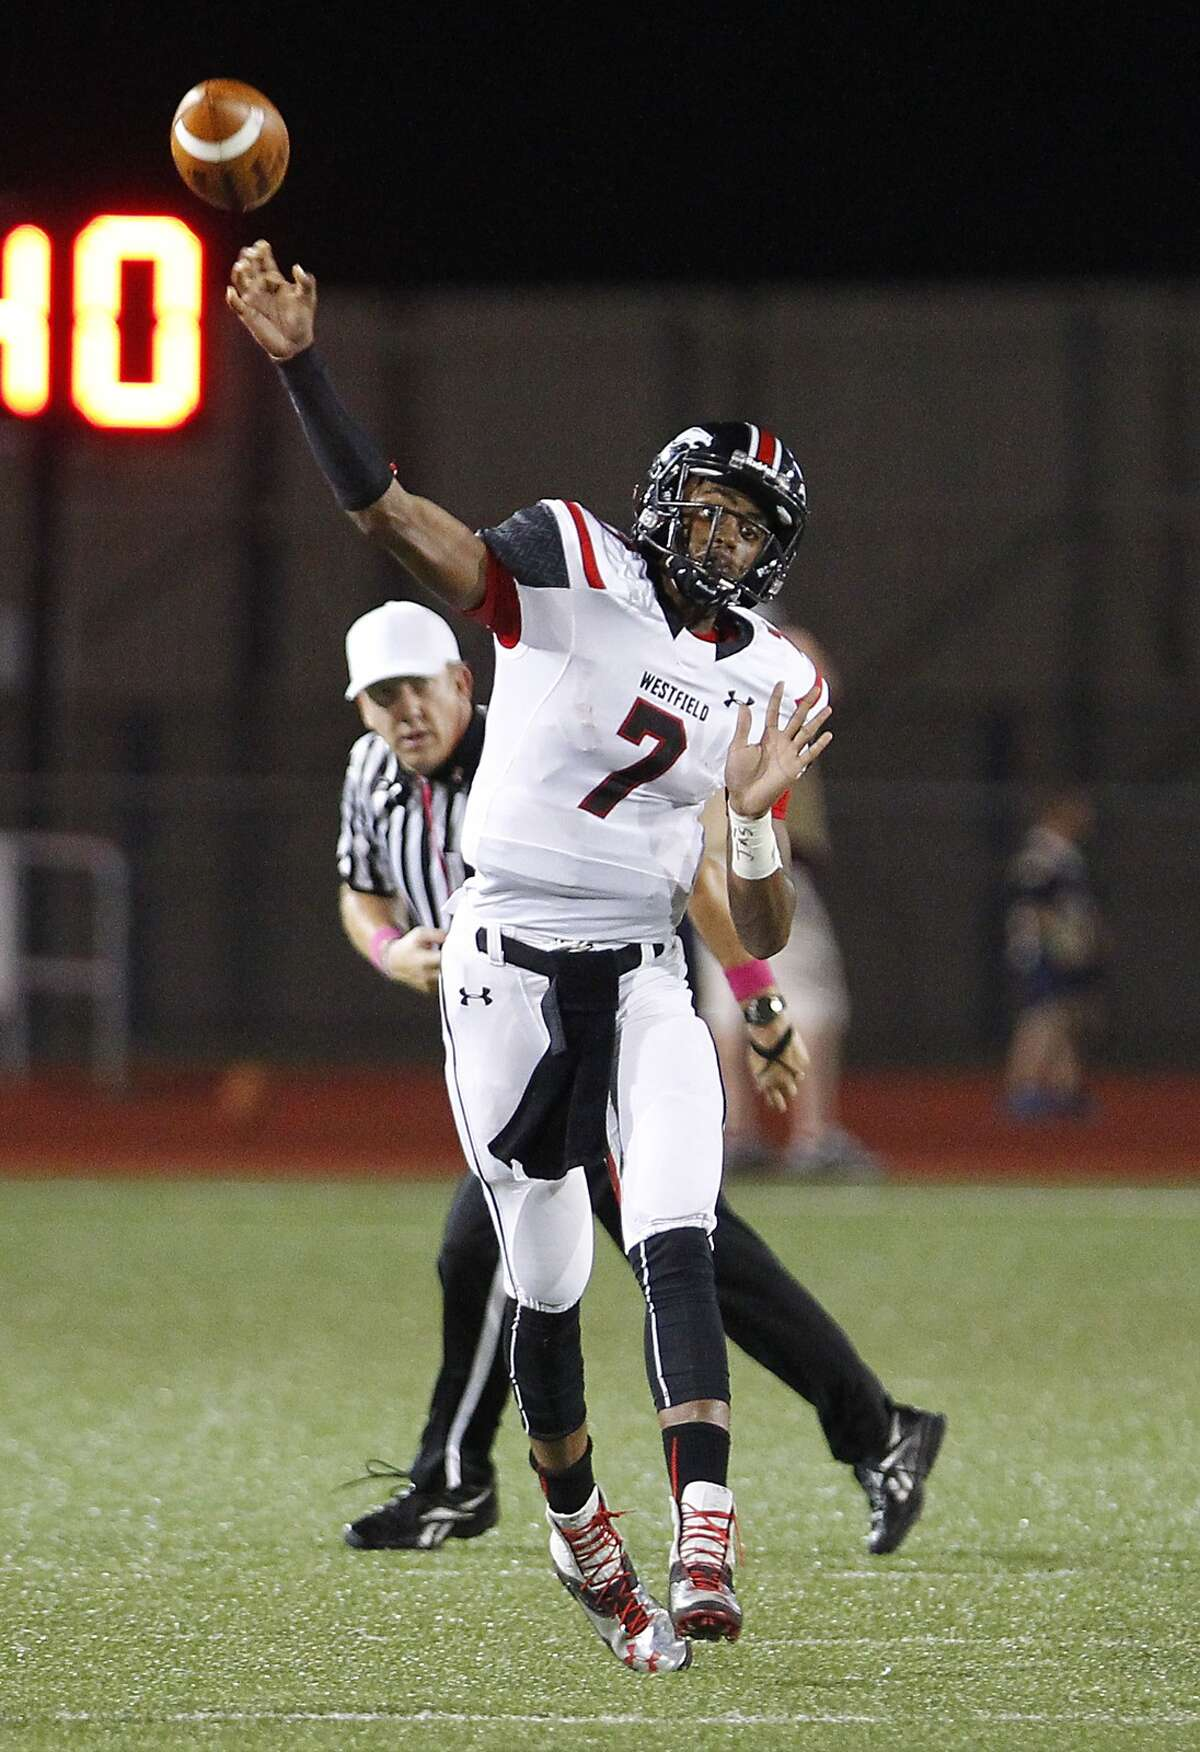 Spring Westfield quarterback Dillon Sterling-Cole fires off a pass as the Mustangs took on Klein Collins at Klein Memorial Stadium on October 10, 2014.